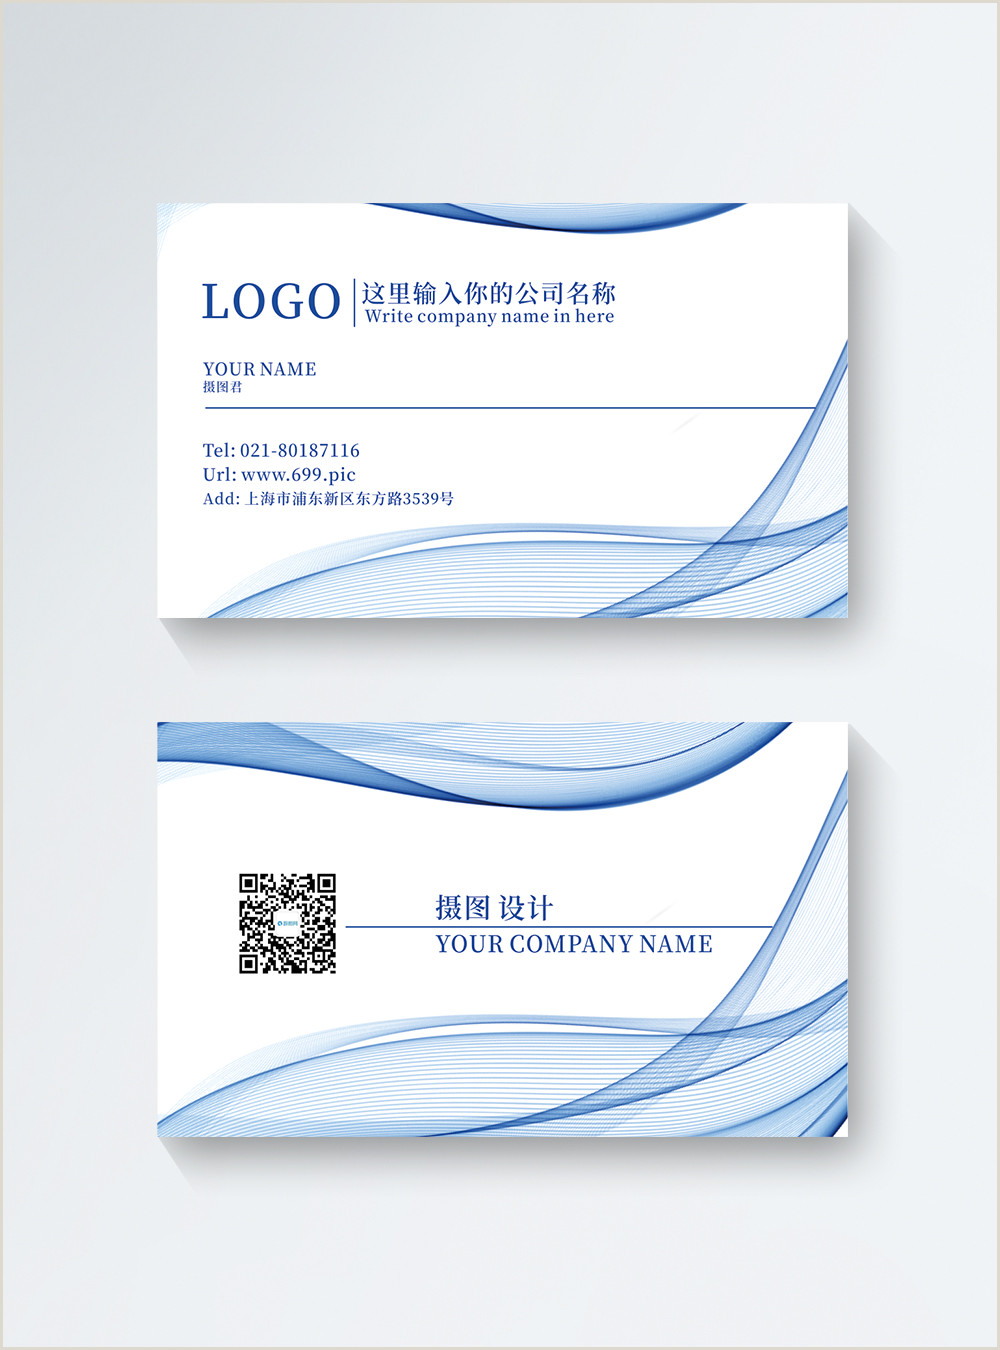 Simple Personal Business Cards Simple Business Personal Business Card Template